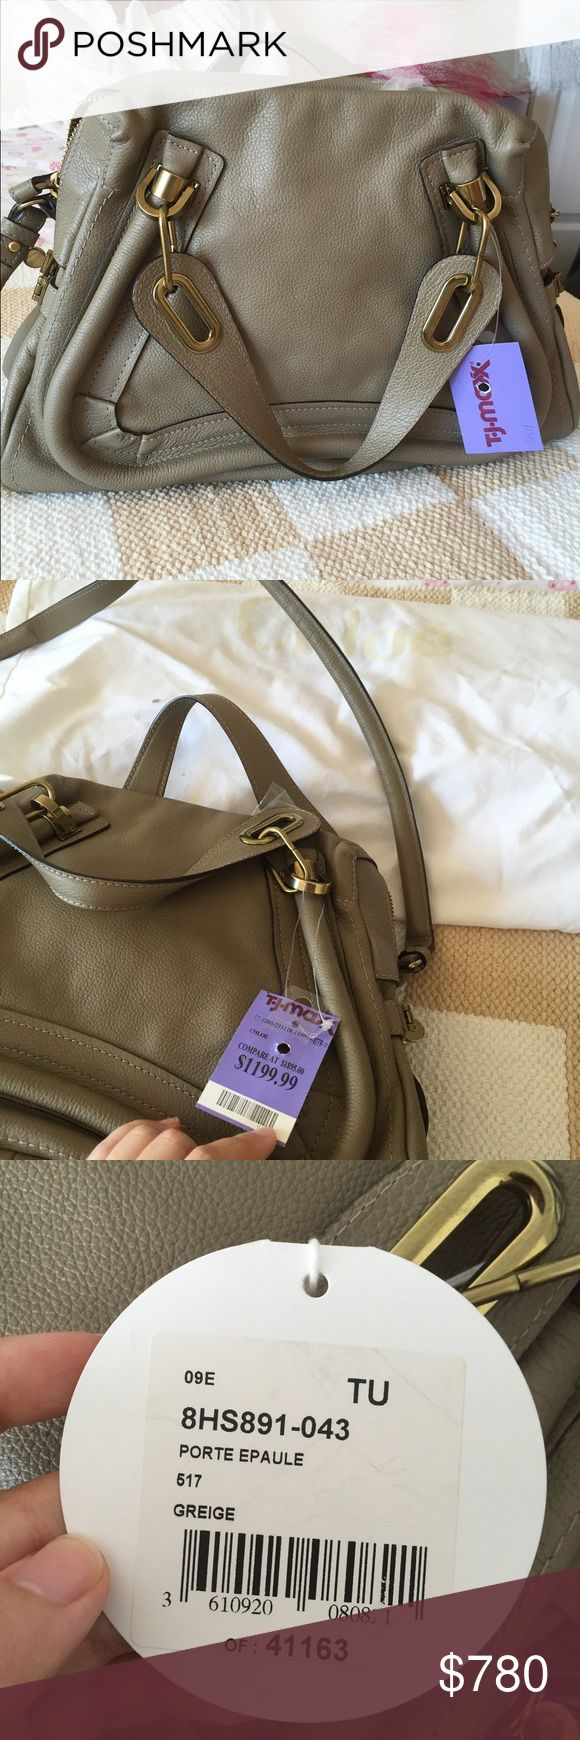 Brand-new Chloe Paraty Medium, 100% authentic. Brand-new Chloe Paraty Medium Satchel in calfskin, color is Greige. NWT. 100% authentic. Chloe Bags Satchels